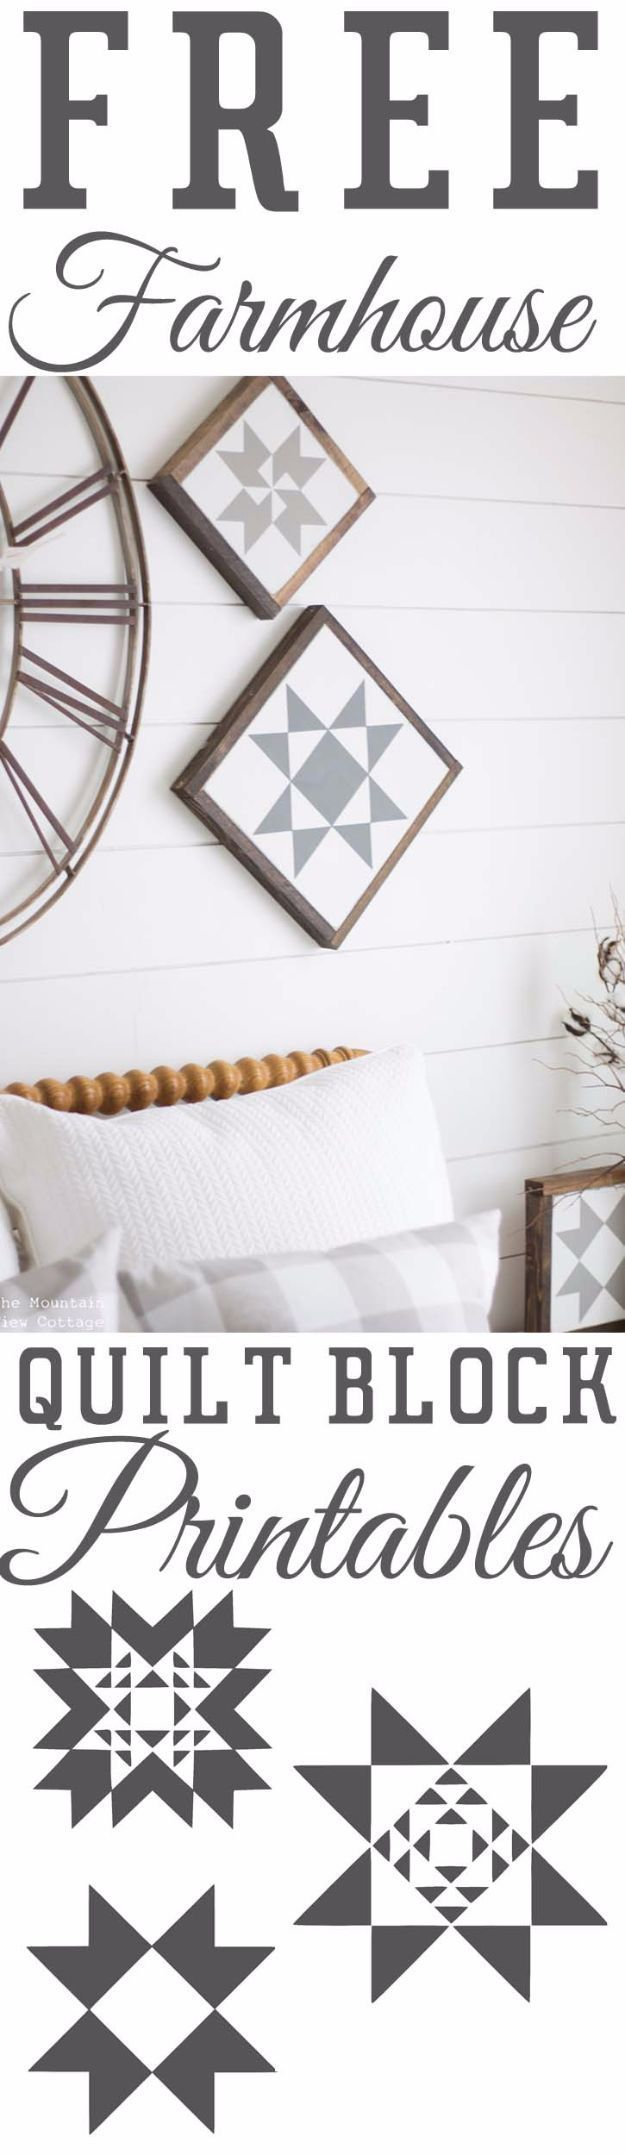 Free Printables For Your Walls - Free Farmhouse Quilt Block Printables - Best Free Prints for Wall Art and Picture to Print for Home and Bedroom Decor - Ideas for the Home, Organization - Quotes for Bedroom and Kitchens, Vintage Bathroom Pictures - Downloadable Printable for Kids - DIY and Crafts by DIY JOY http://diyjoy.com/free-printables-walls #ArtAndCraftBedroom